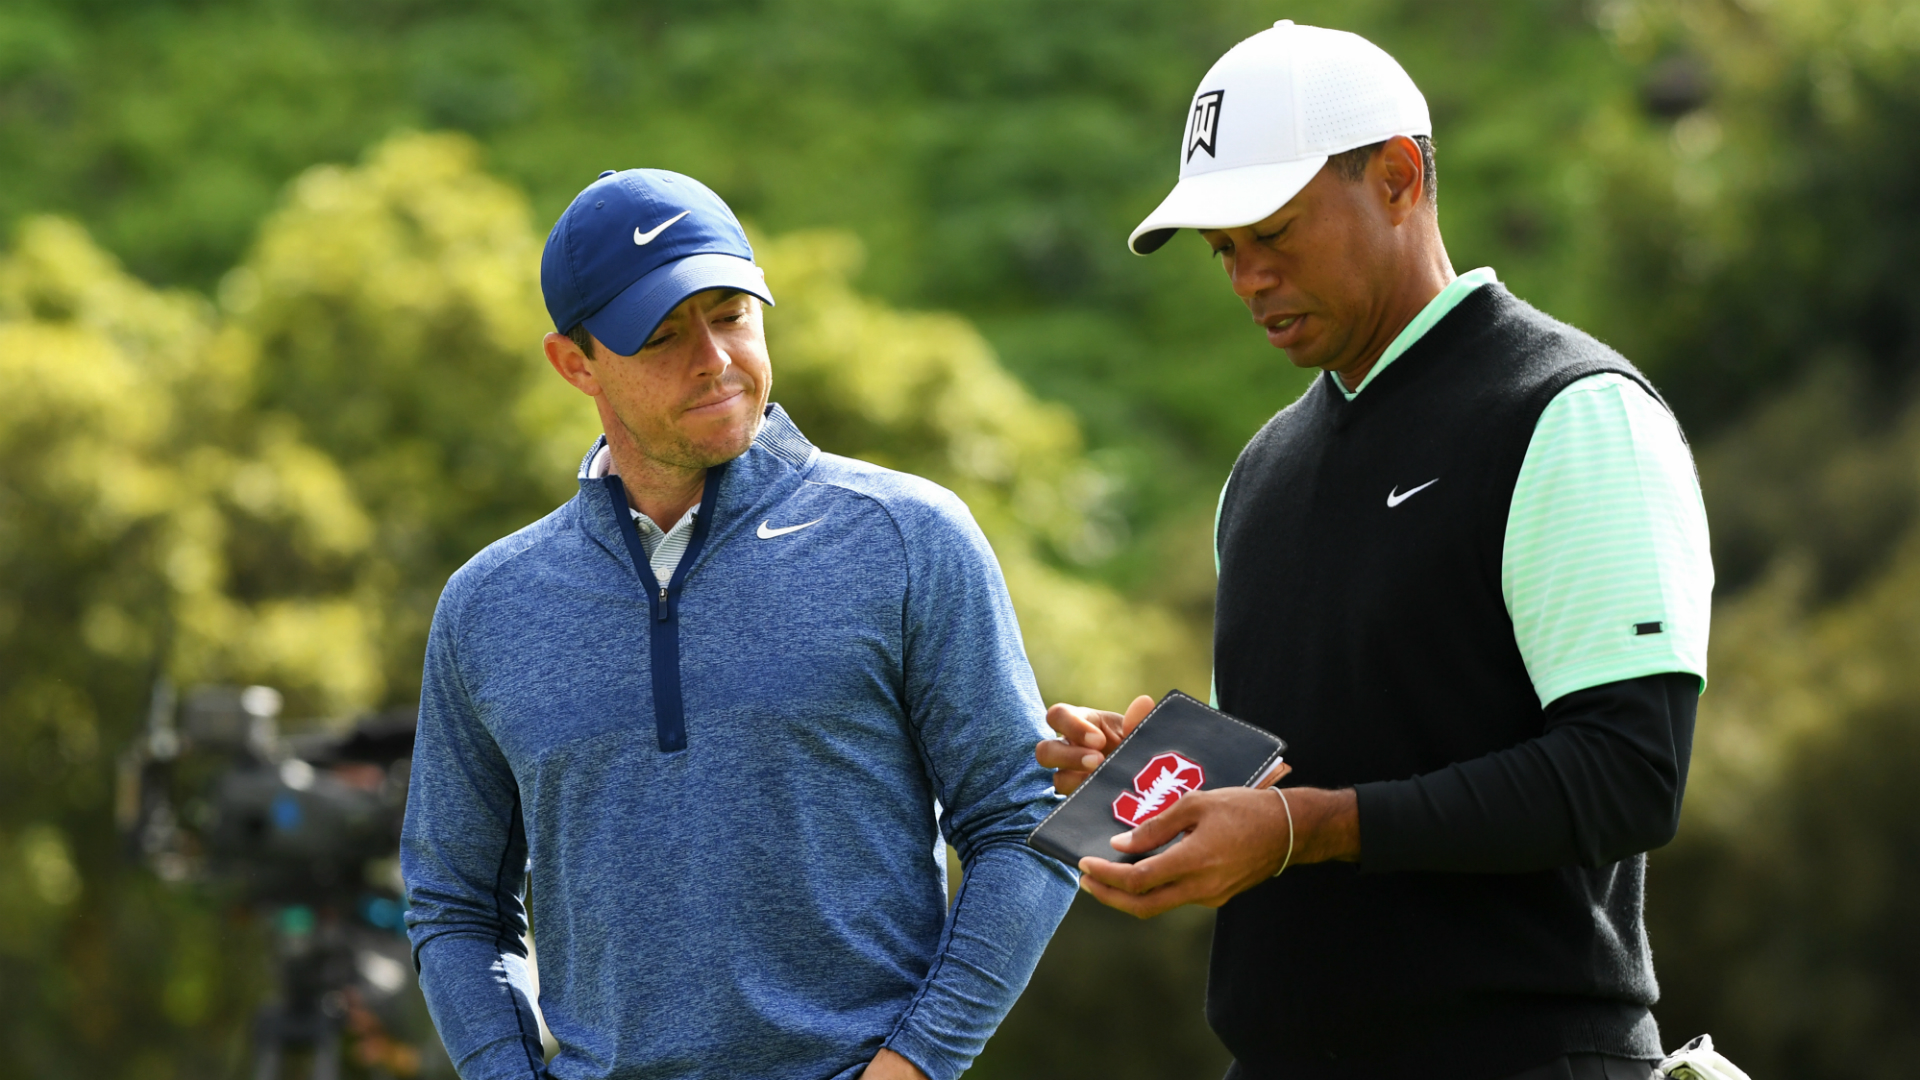 Genesis Open: Rory McIlroy on the charge, Tiger Woods scrambles to make cut